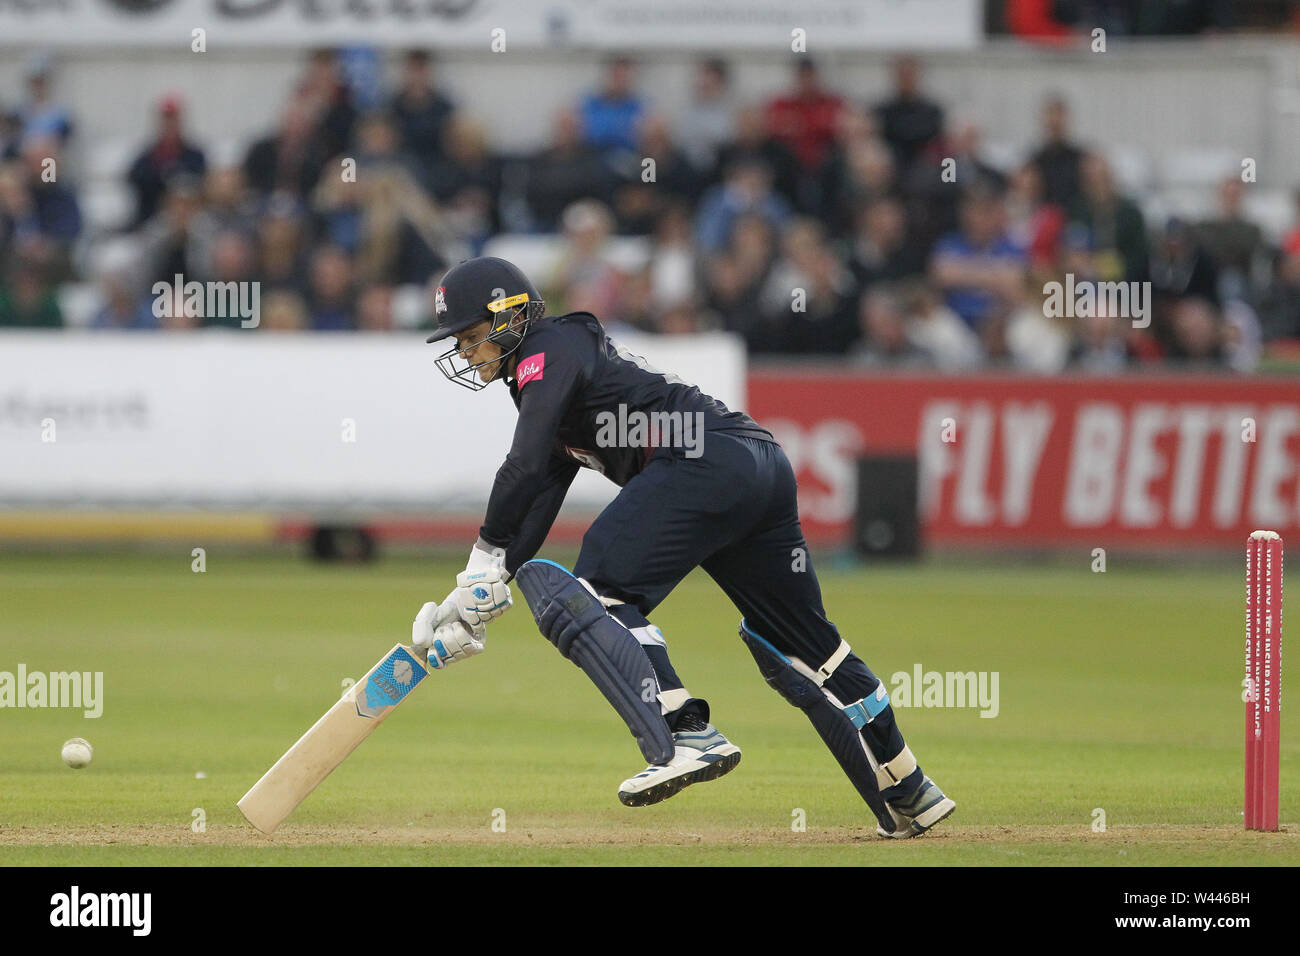 CHESTER LE STREET, ENGLAND 19th July 2019. Tom Sole of Northants batting during the Vitality T20 Blast match between Durham County Cricket Club and Northamptonshire County Cricket Club at Emirates Riverside, Chester le Street on Friday 19th July 2019. (Credit: Mark Fletcher   MI News ) Credit: MI News & Sport /Alamy Live News - Stock Image